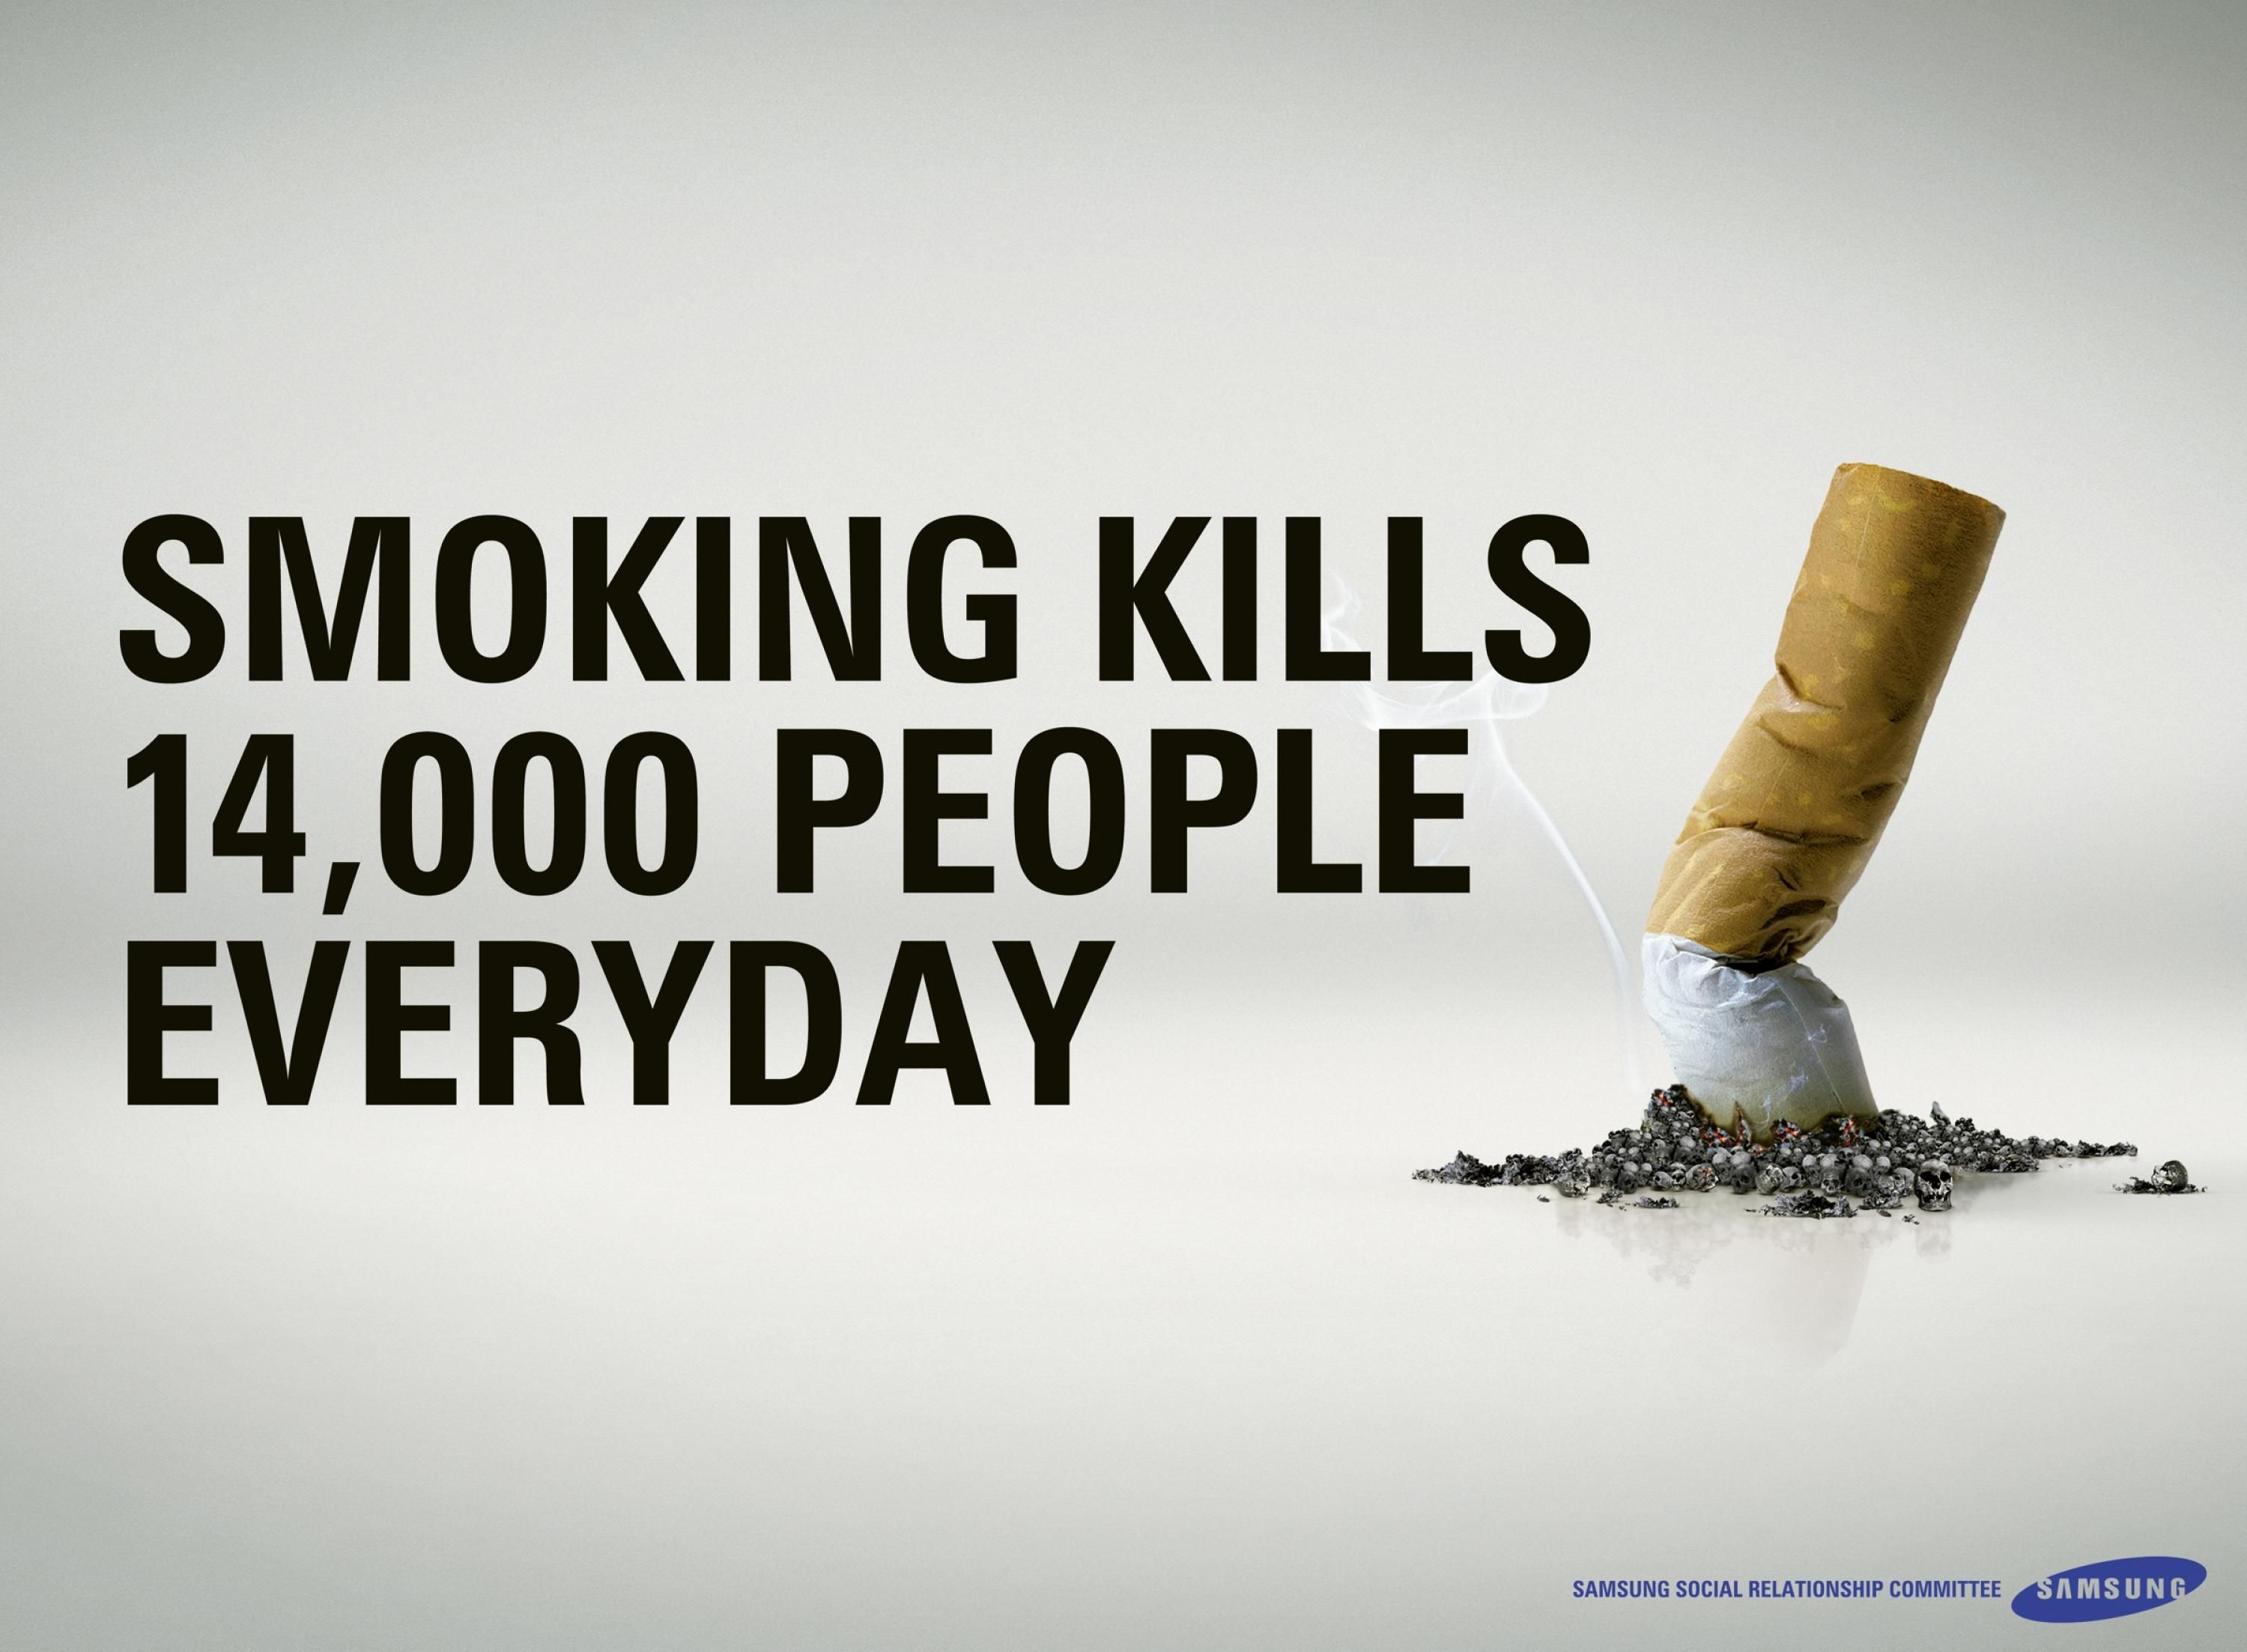 samsung social relationship committee anti smoking message no anti smoking